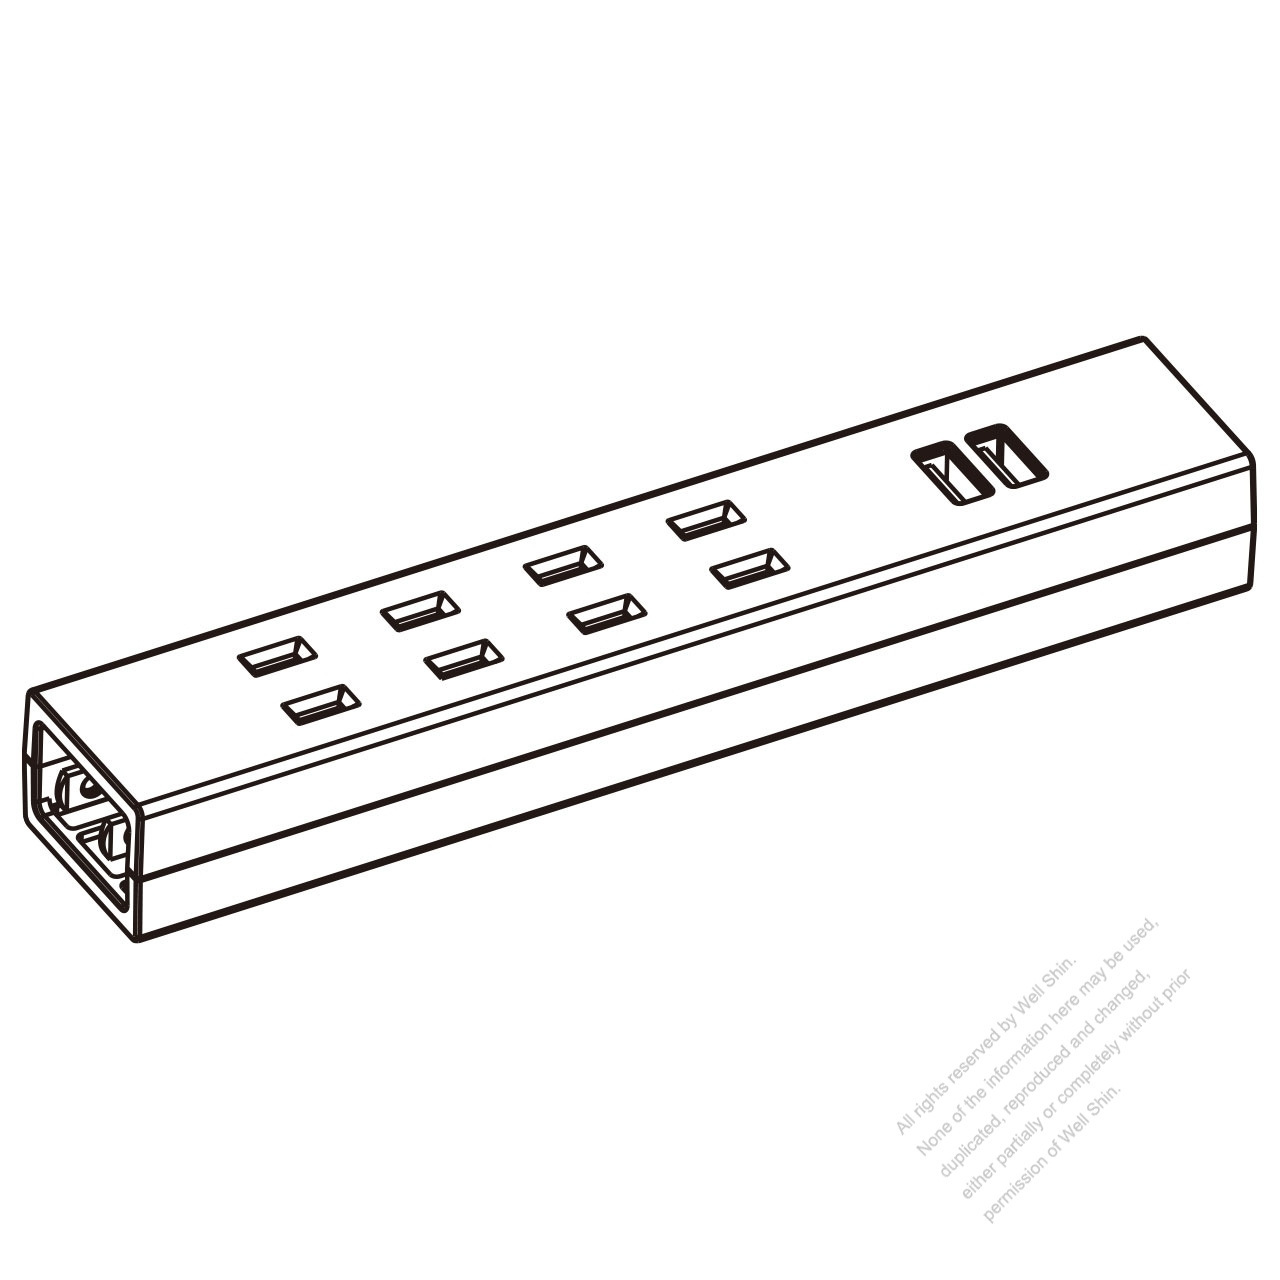 Ac To Usb Adapter Walmart | Wiring Diagram Database